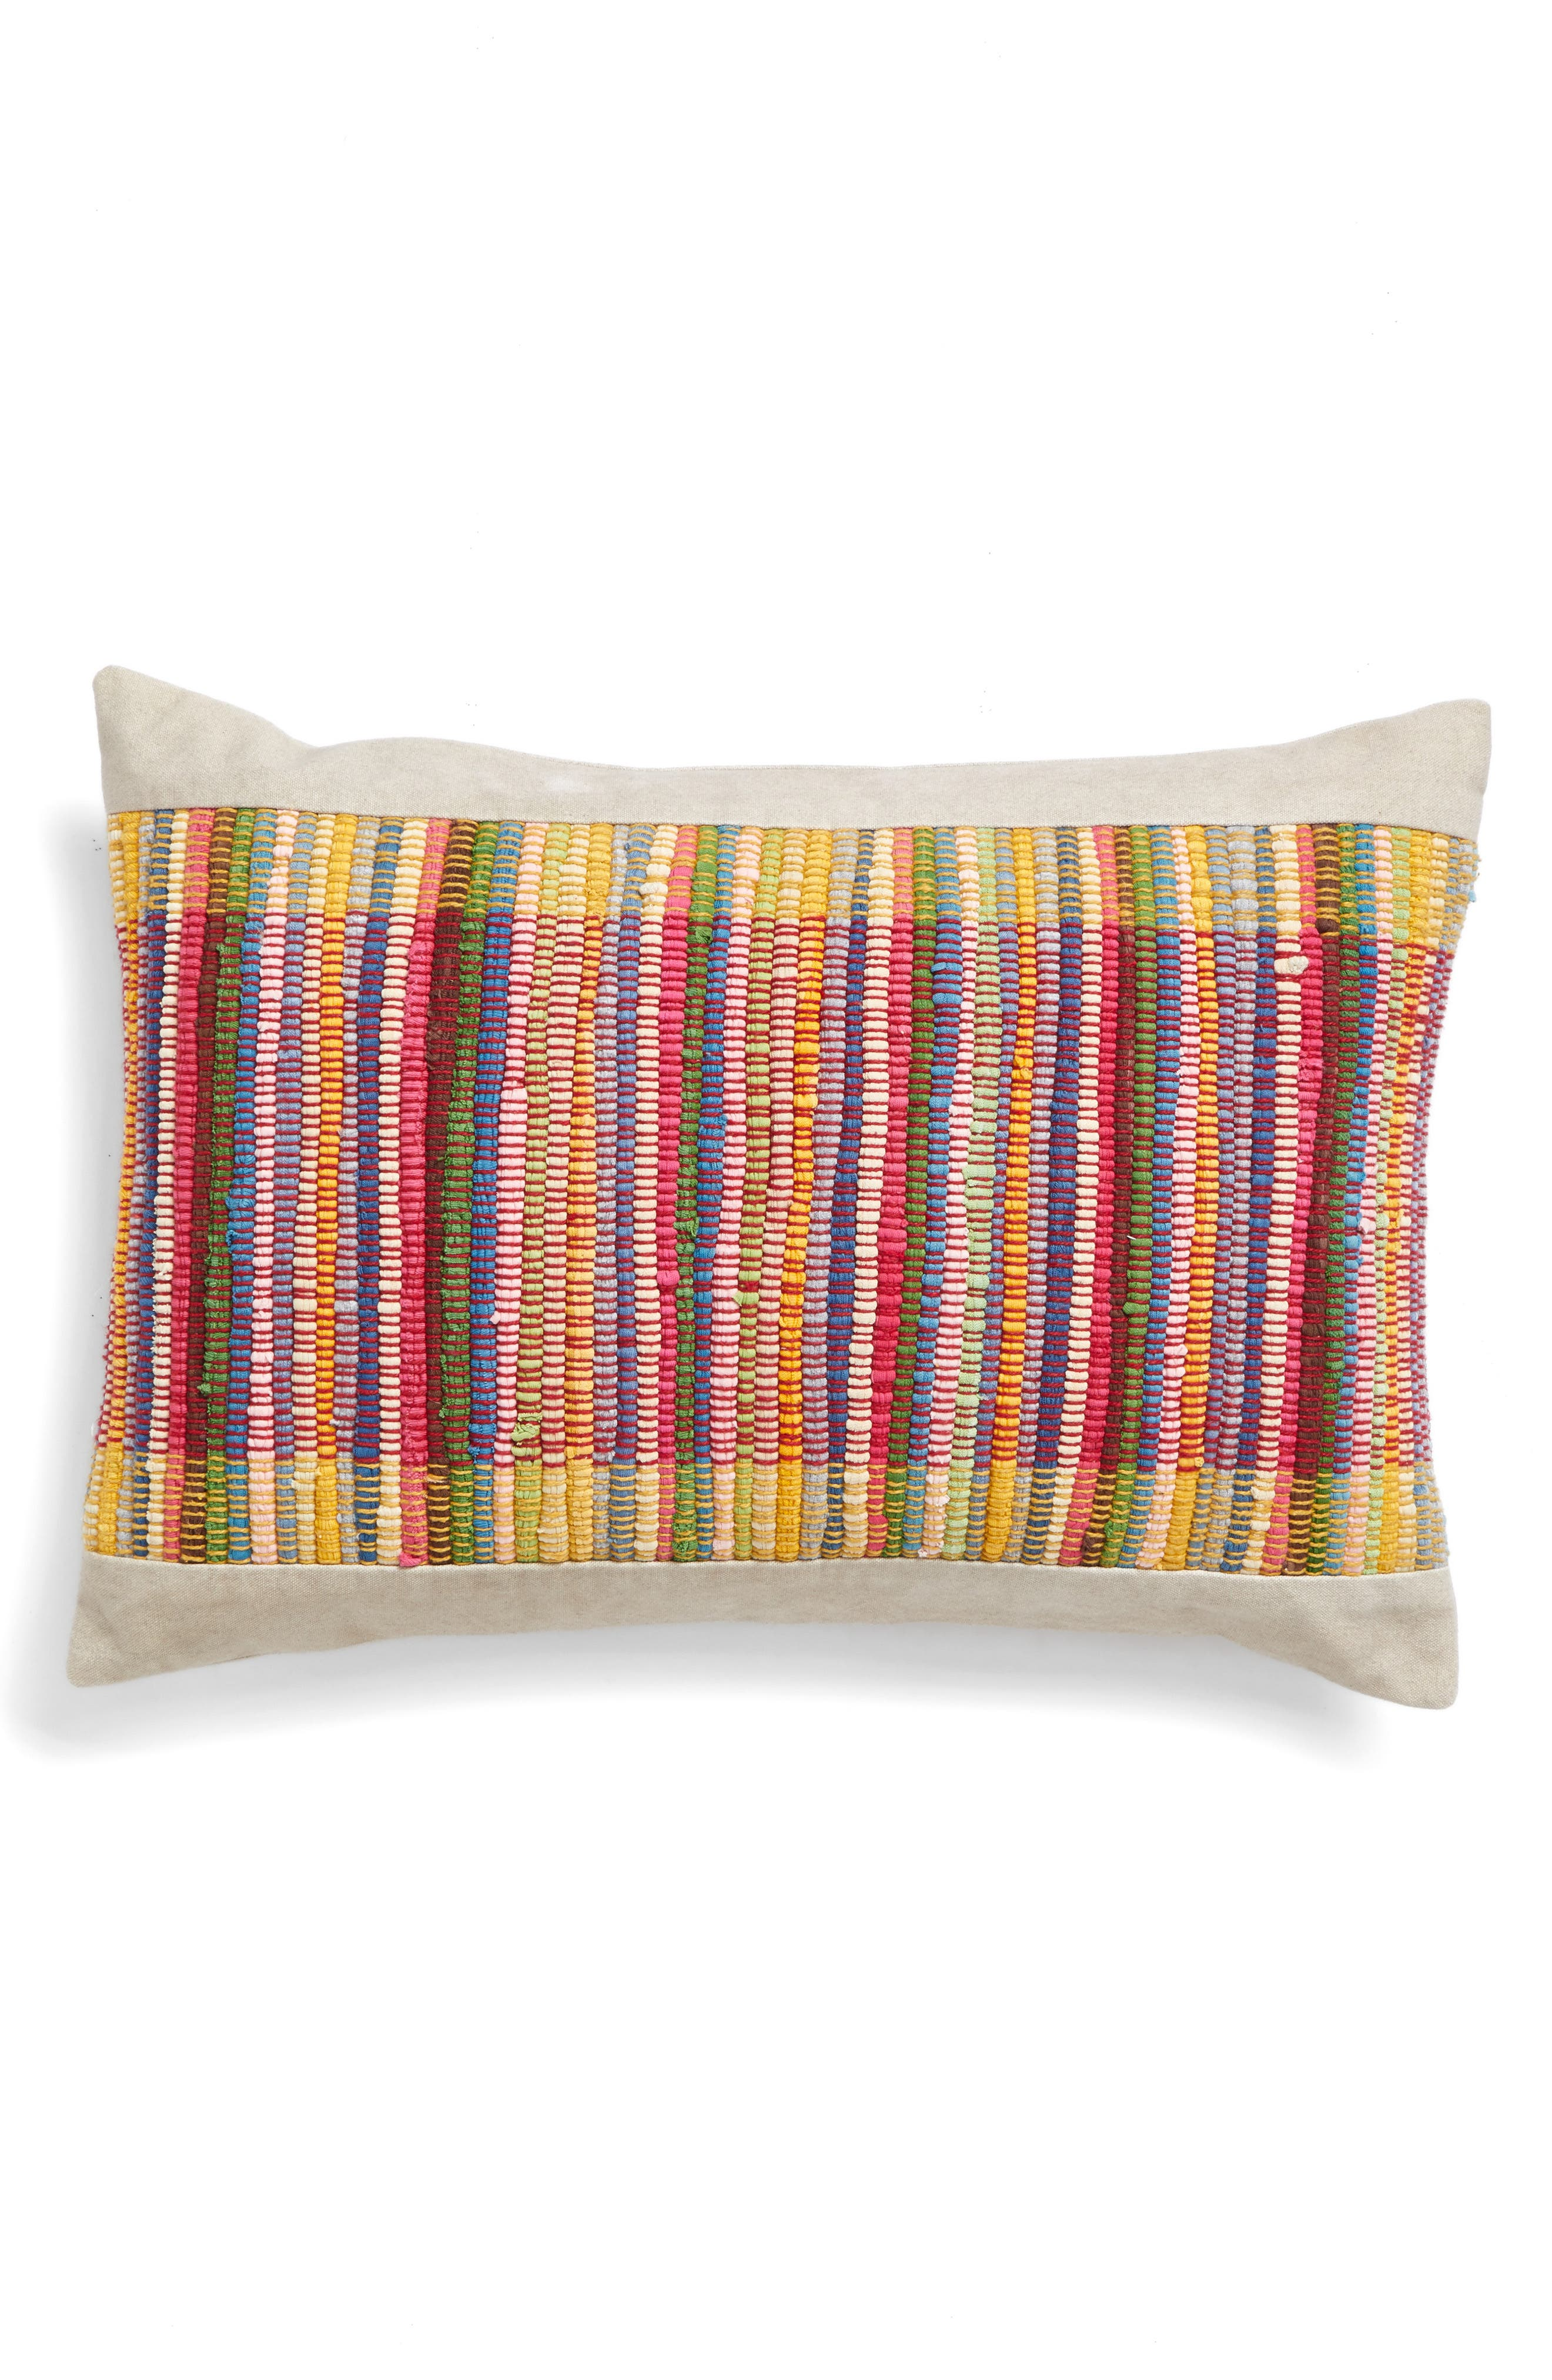 Woven Accent Pillow,                         Main,                         color, 250